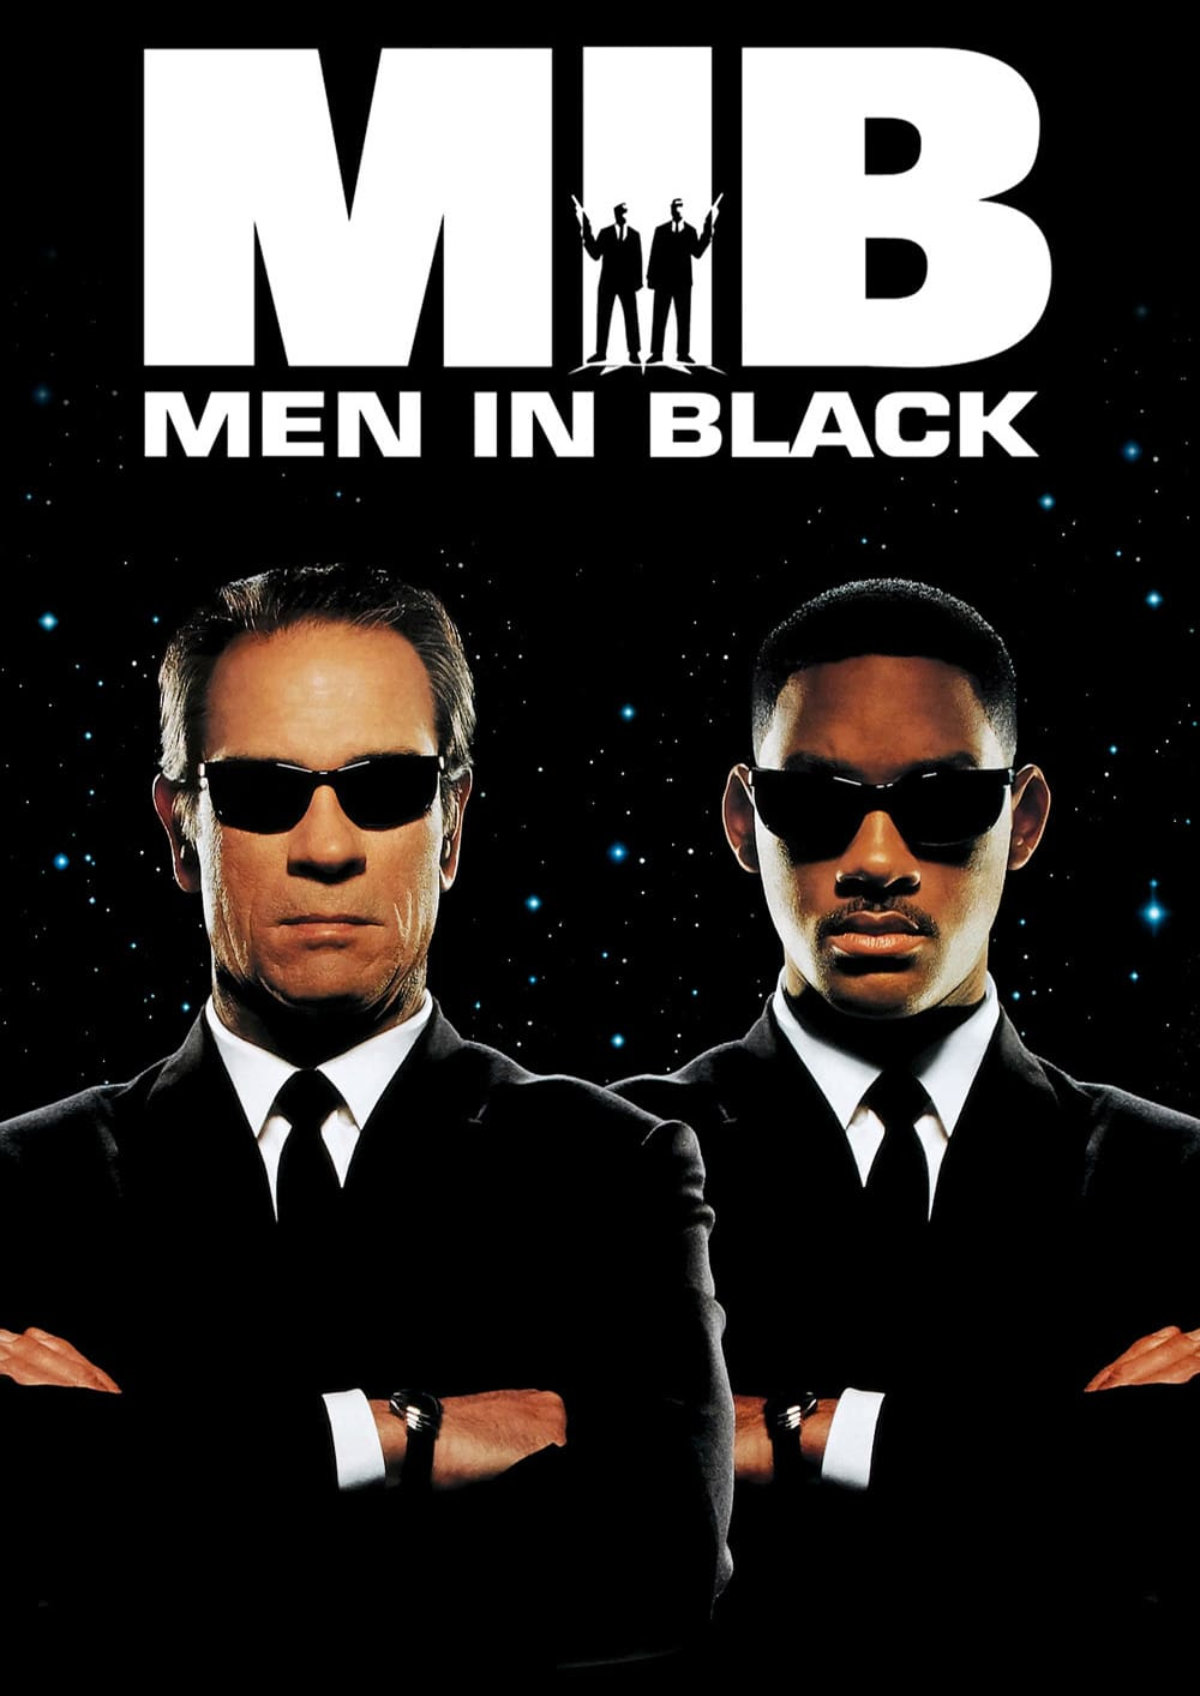 'Men in Black' movie poster